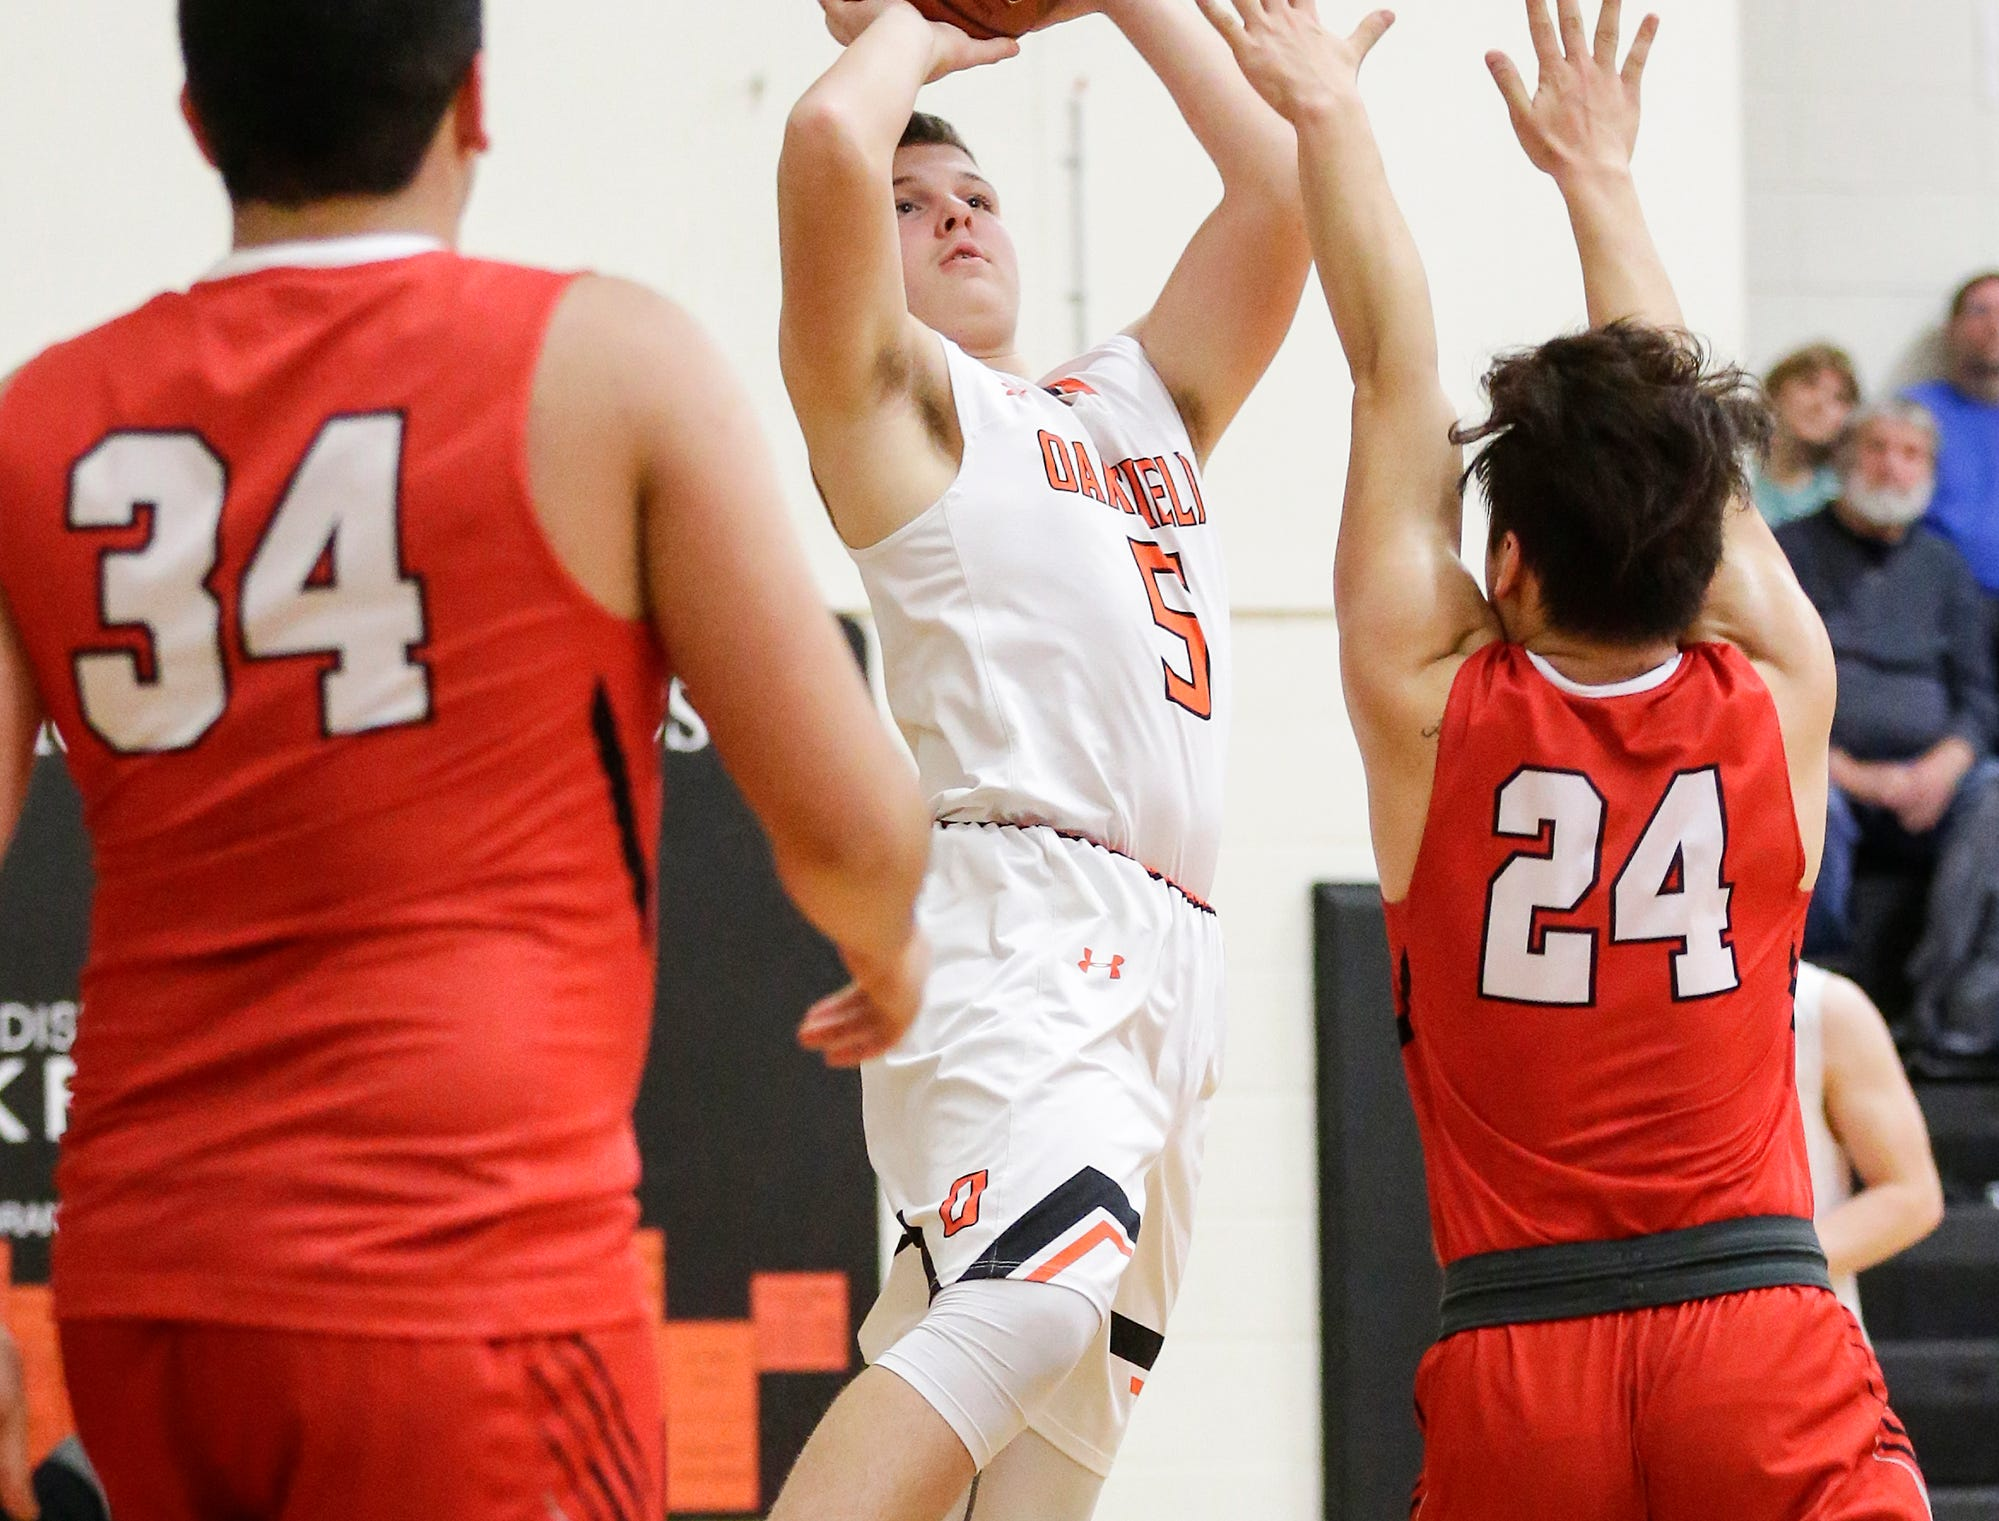 Oakfield High School boys basketball's Blake Bass shoots a basket against Wayland Academy January 11, 2019 during their game in Oakfield. Oakfield won the game 56-48. Doug Raflik/USA TODAY NETWORK-Wisconsin